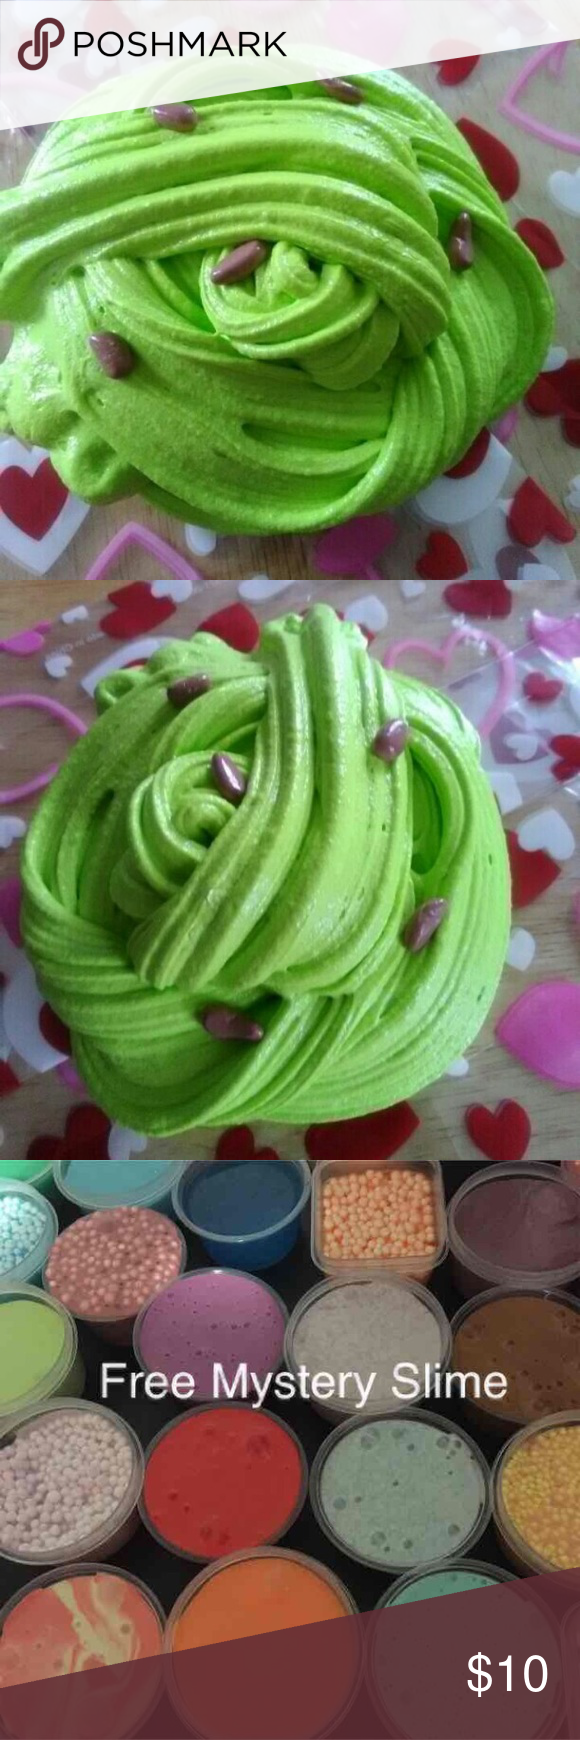 Whipped Pistachio Slime Whipped Pistachio Slime 5 oz   •Super stretchy •Includes a free Mystery Slime or Floam, slime actIvator and containers Accessories